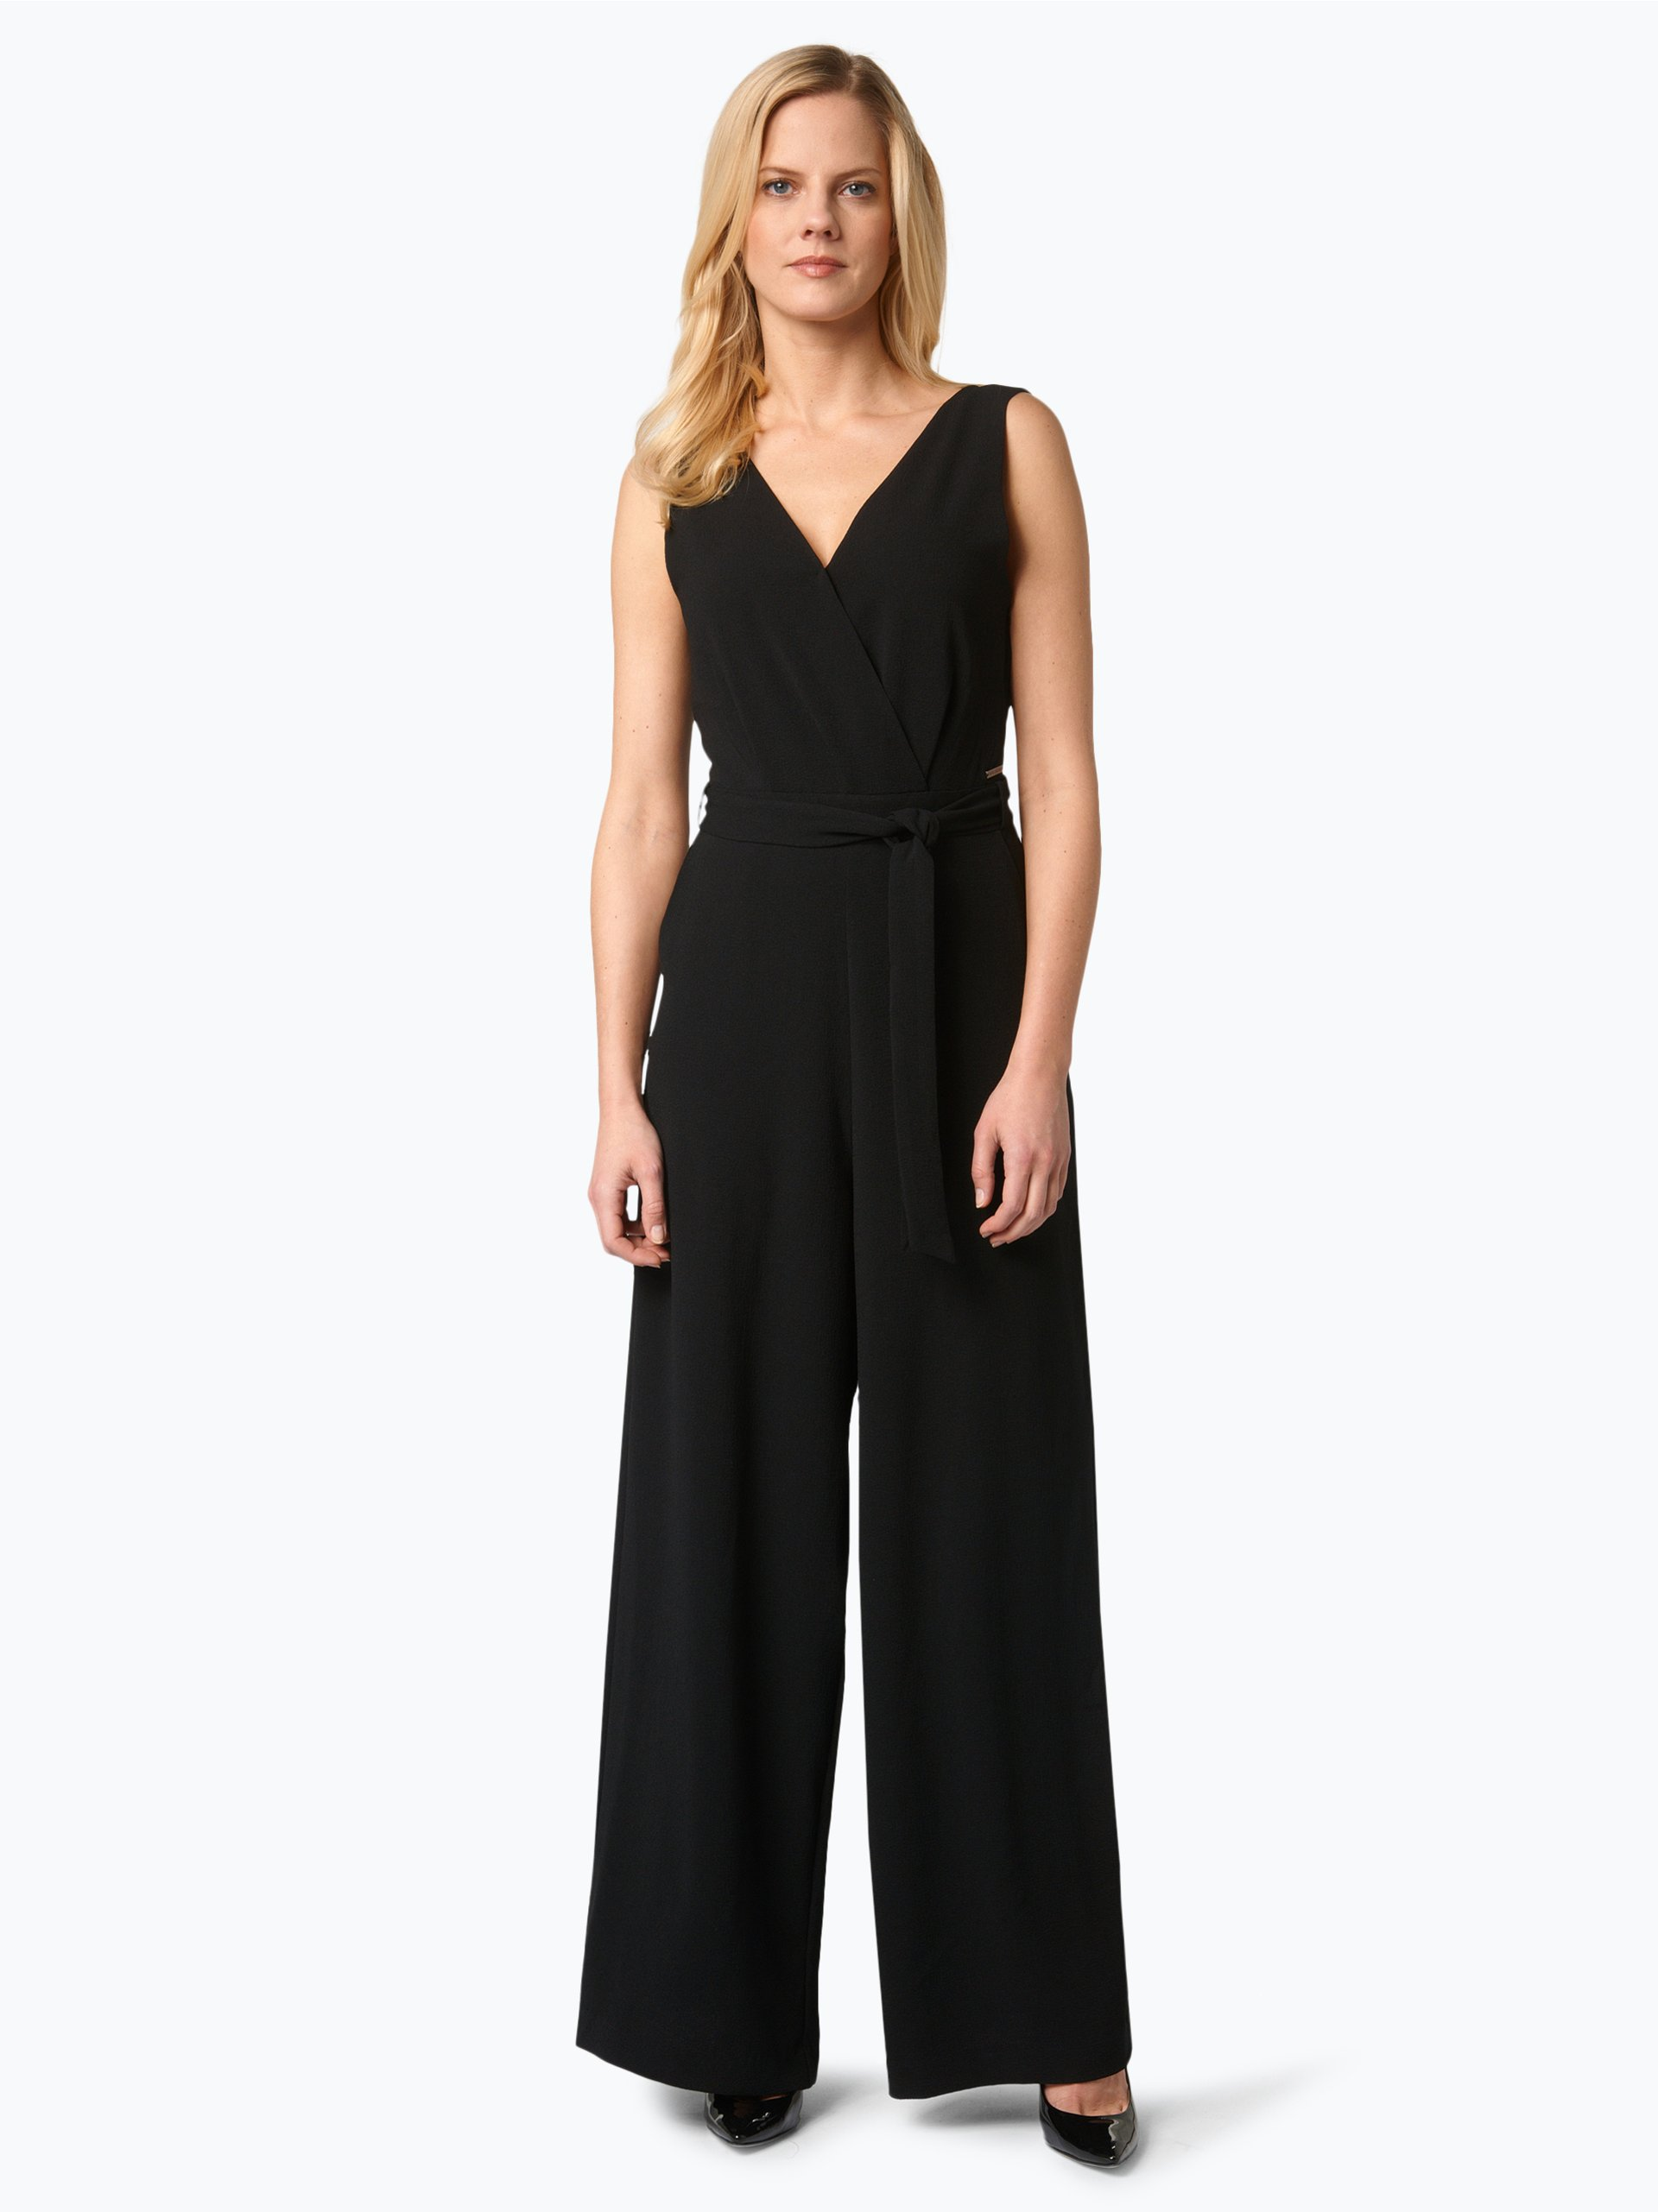 pepe jeans damen jumpsuit petra 2 online kaufen peek und cloppenburg de. Black Bedroom Furniture Sets. Home Design Ideas